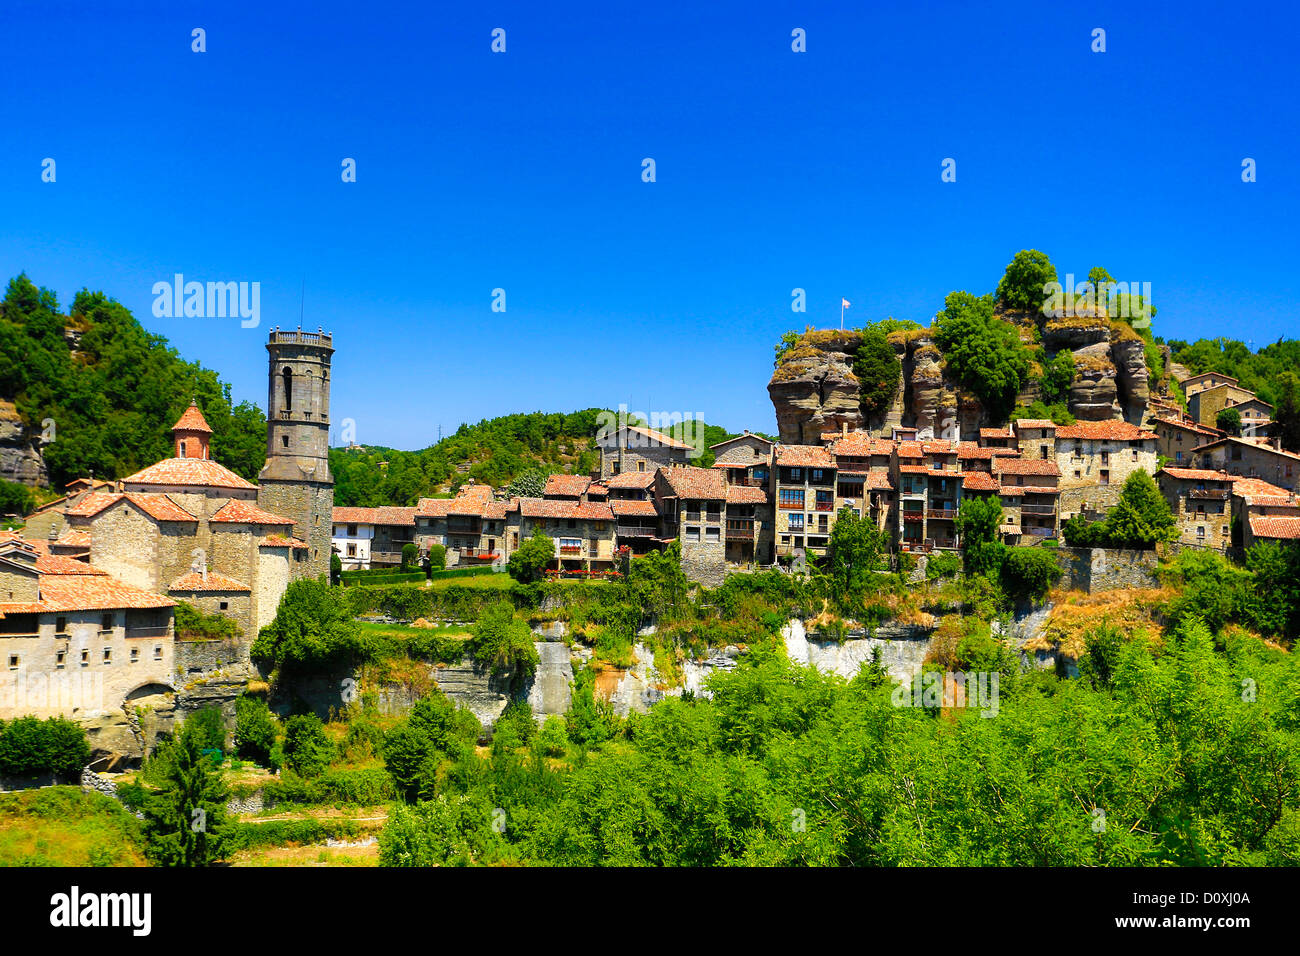 Spain, Europe, Catalonia, Barcelona Province, Rupit, town, architecture, belfry, church, medieval, natural, picturesque, - Stock Image